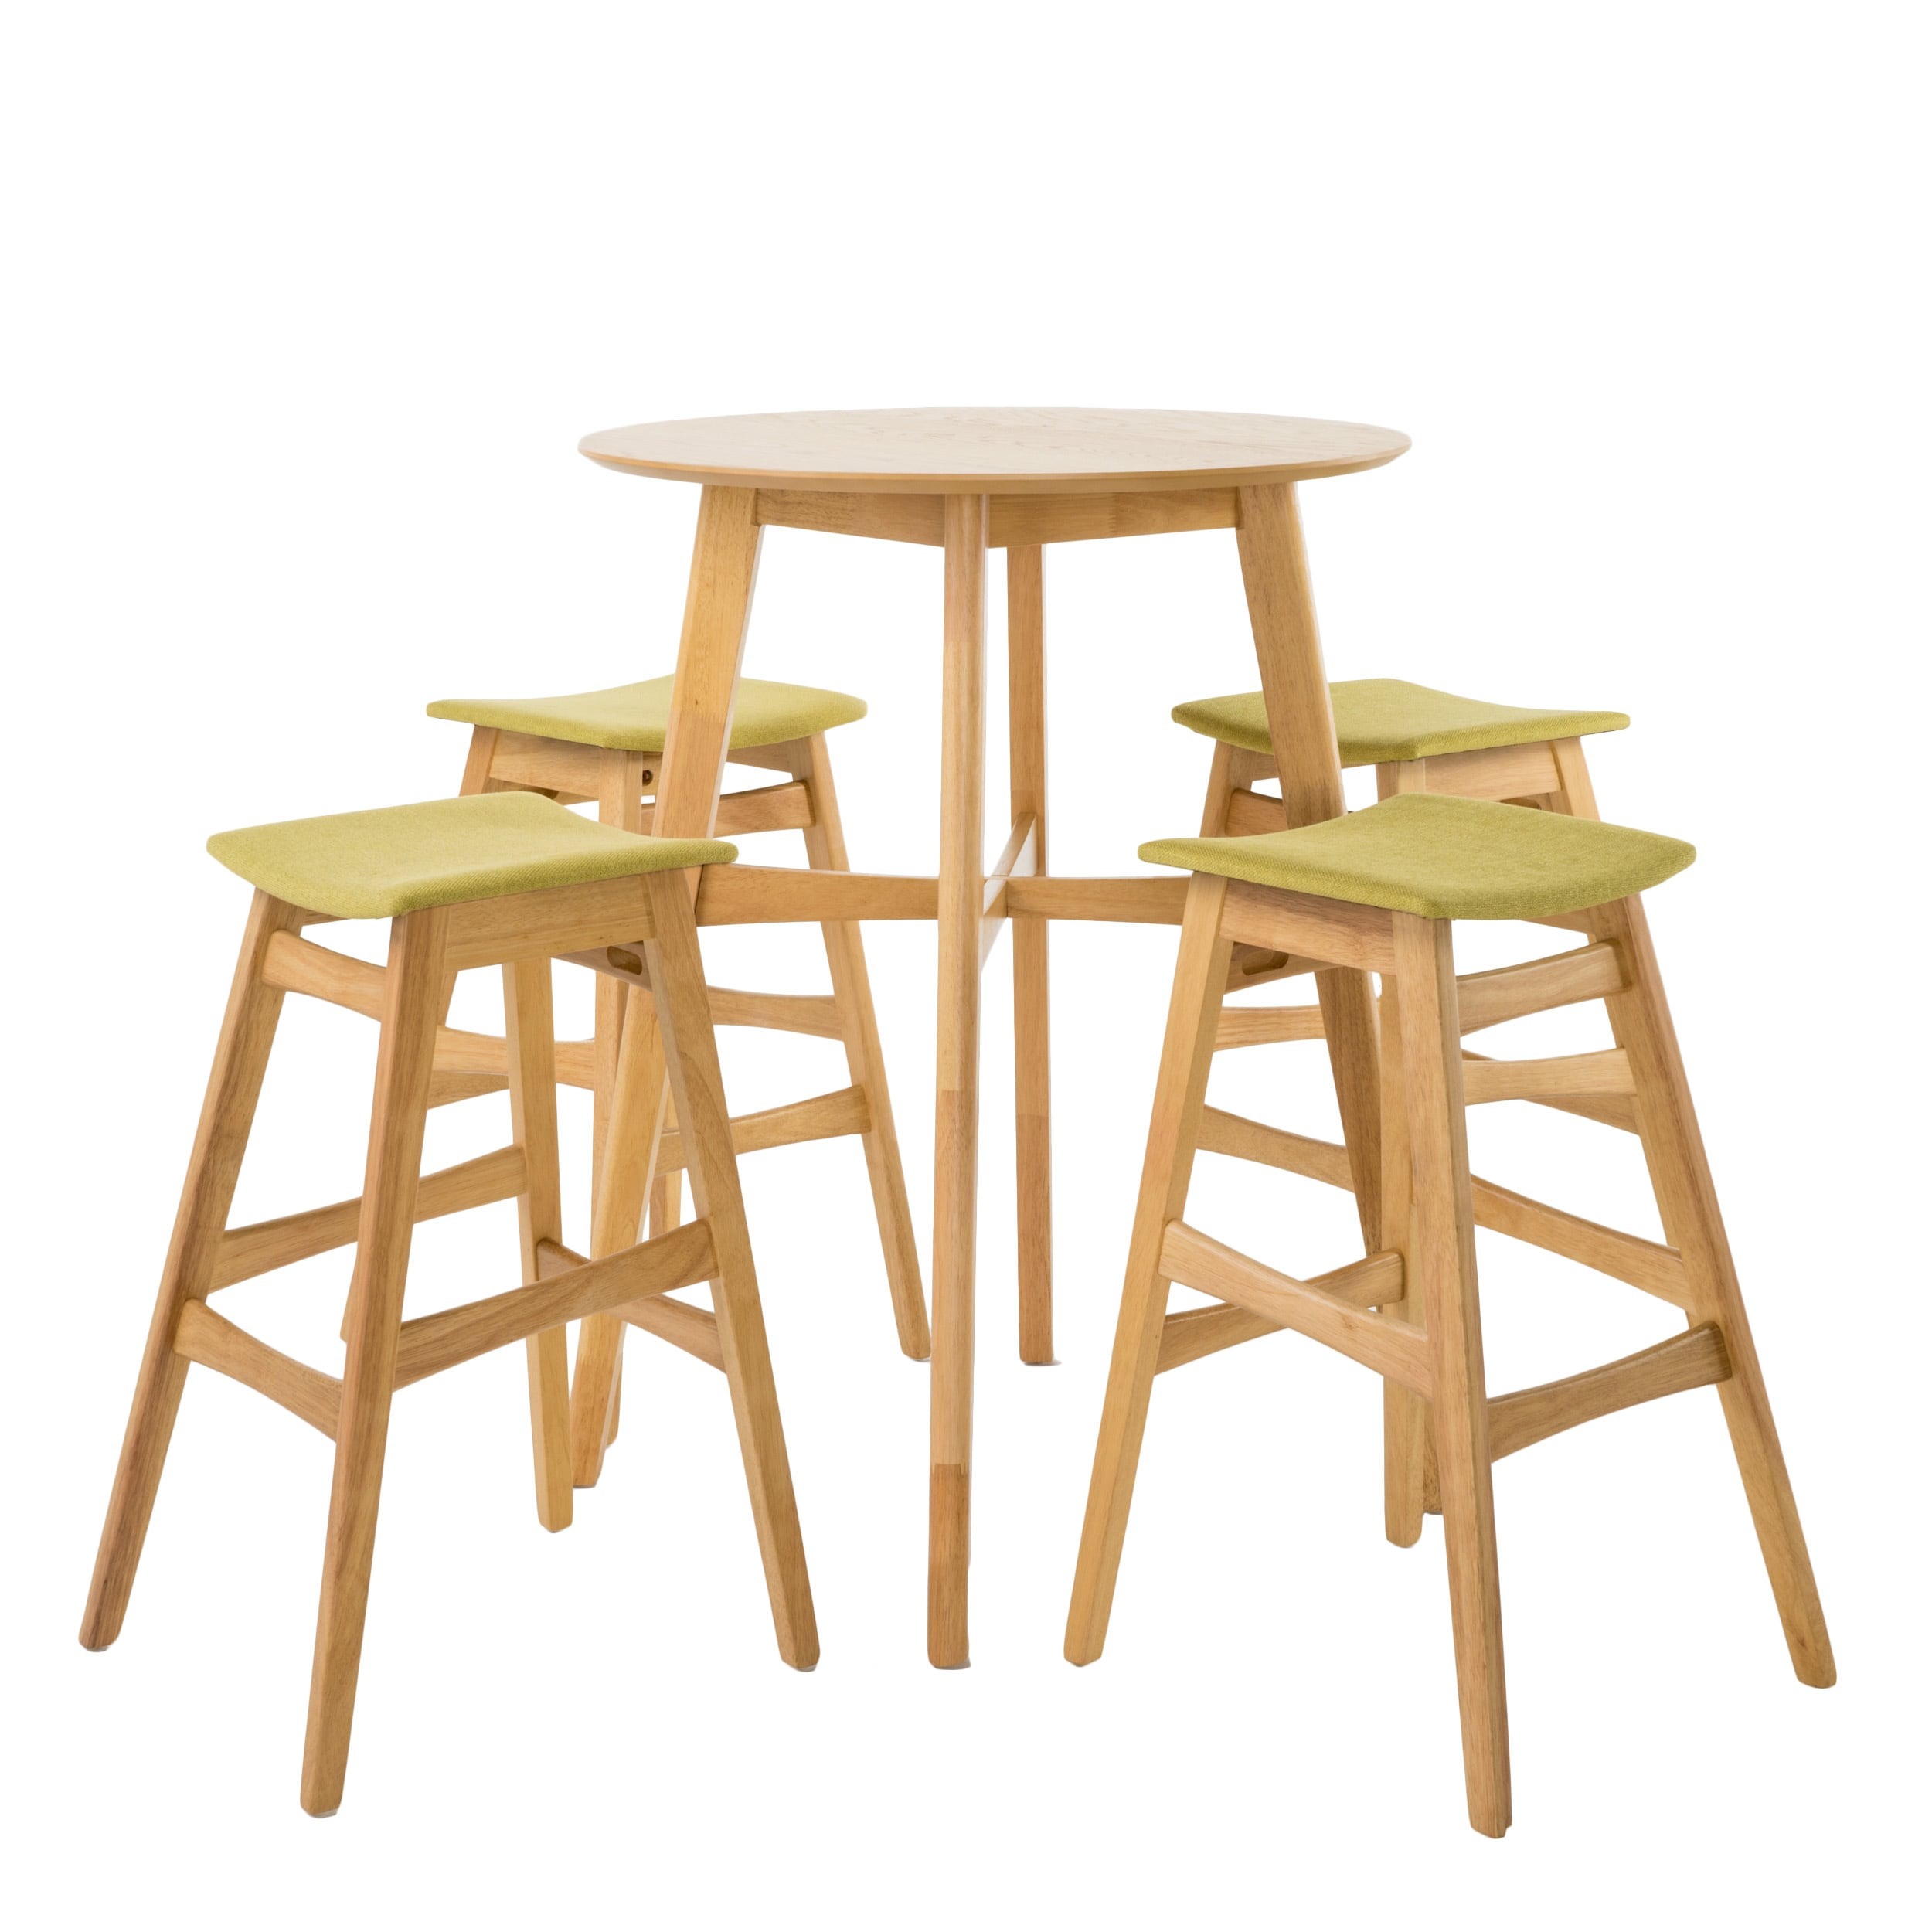 Christopher Knight Home Emmaline Mid-Century 5-piece Bar Height Dining by